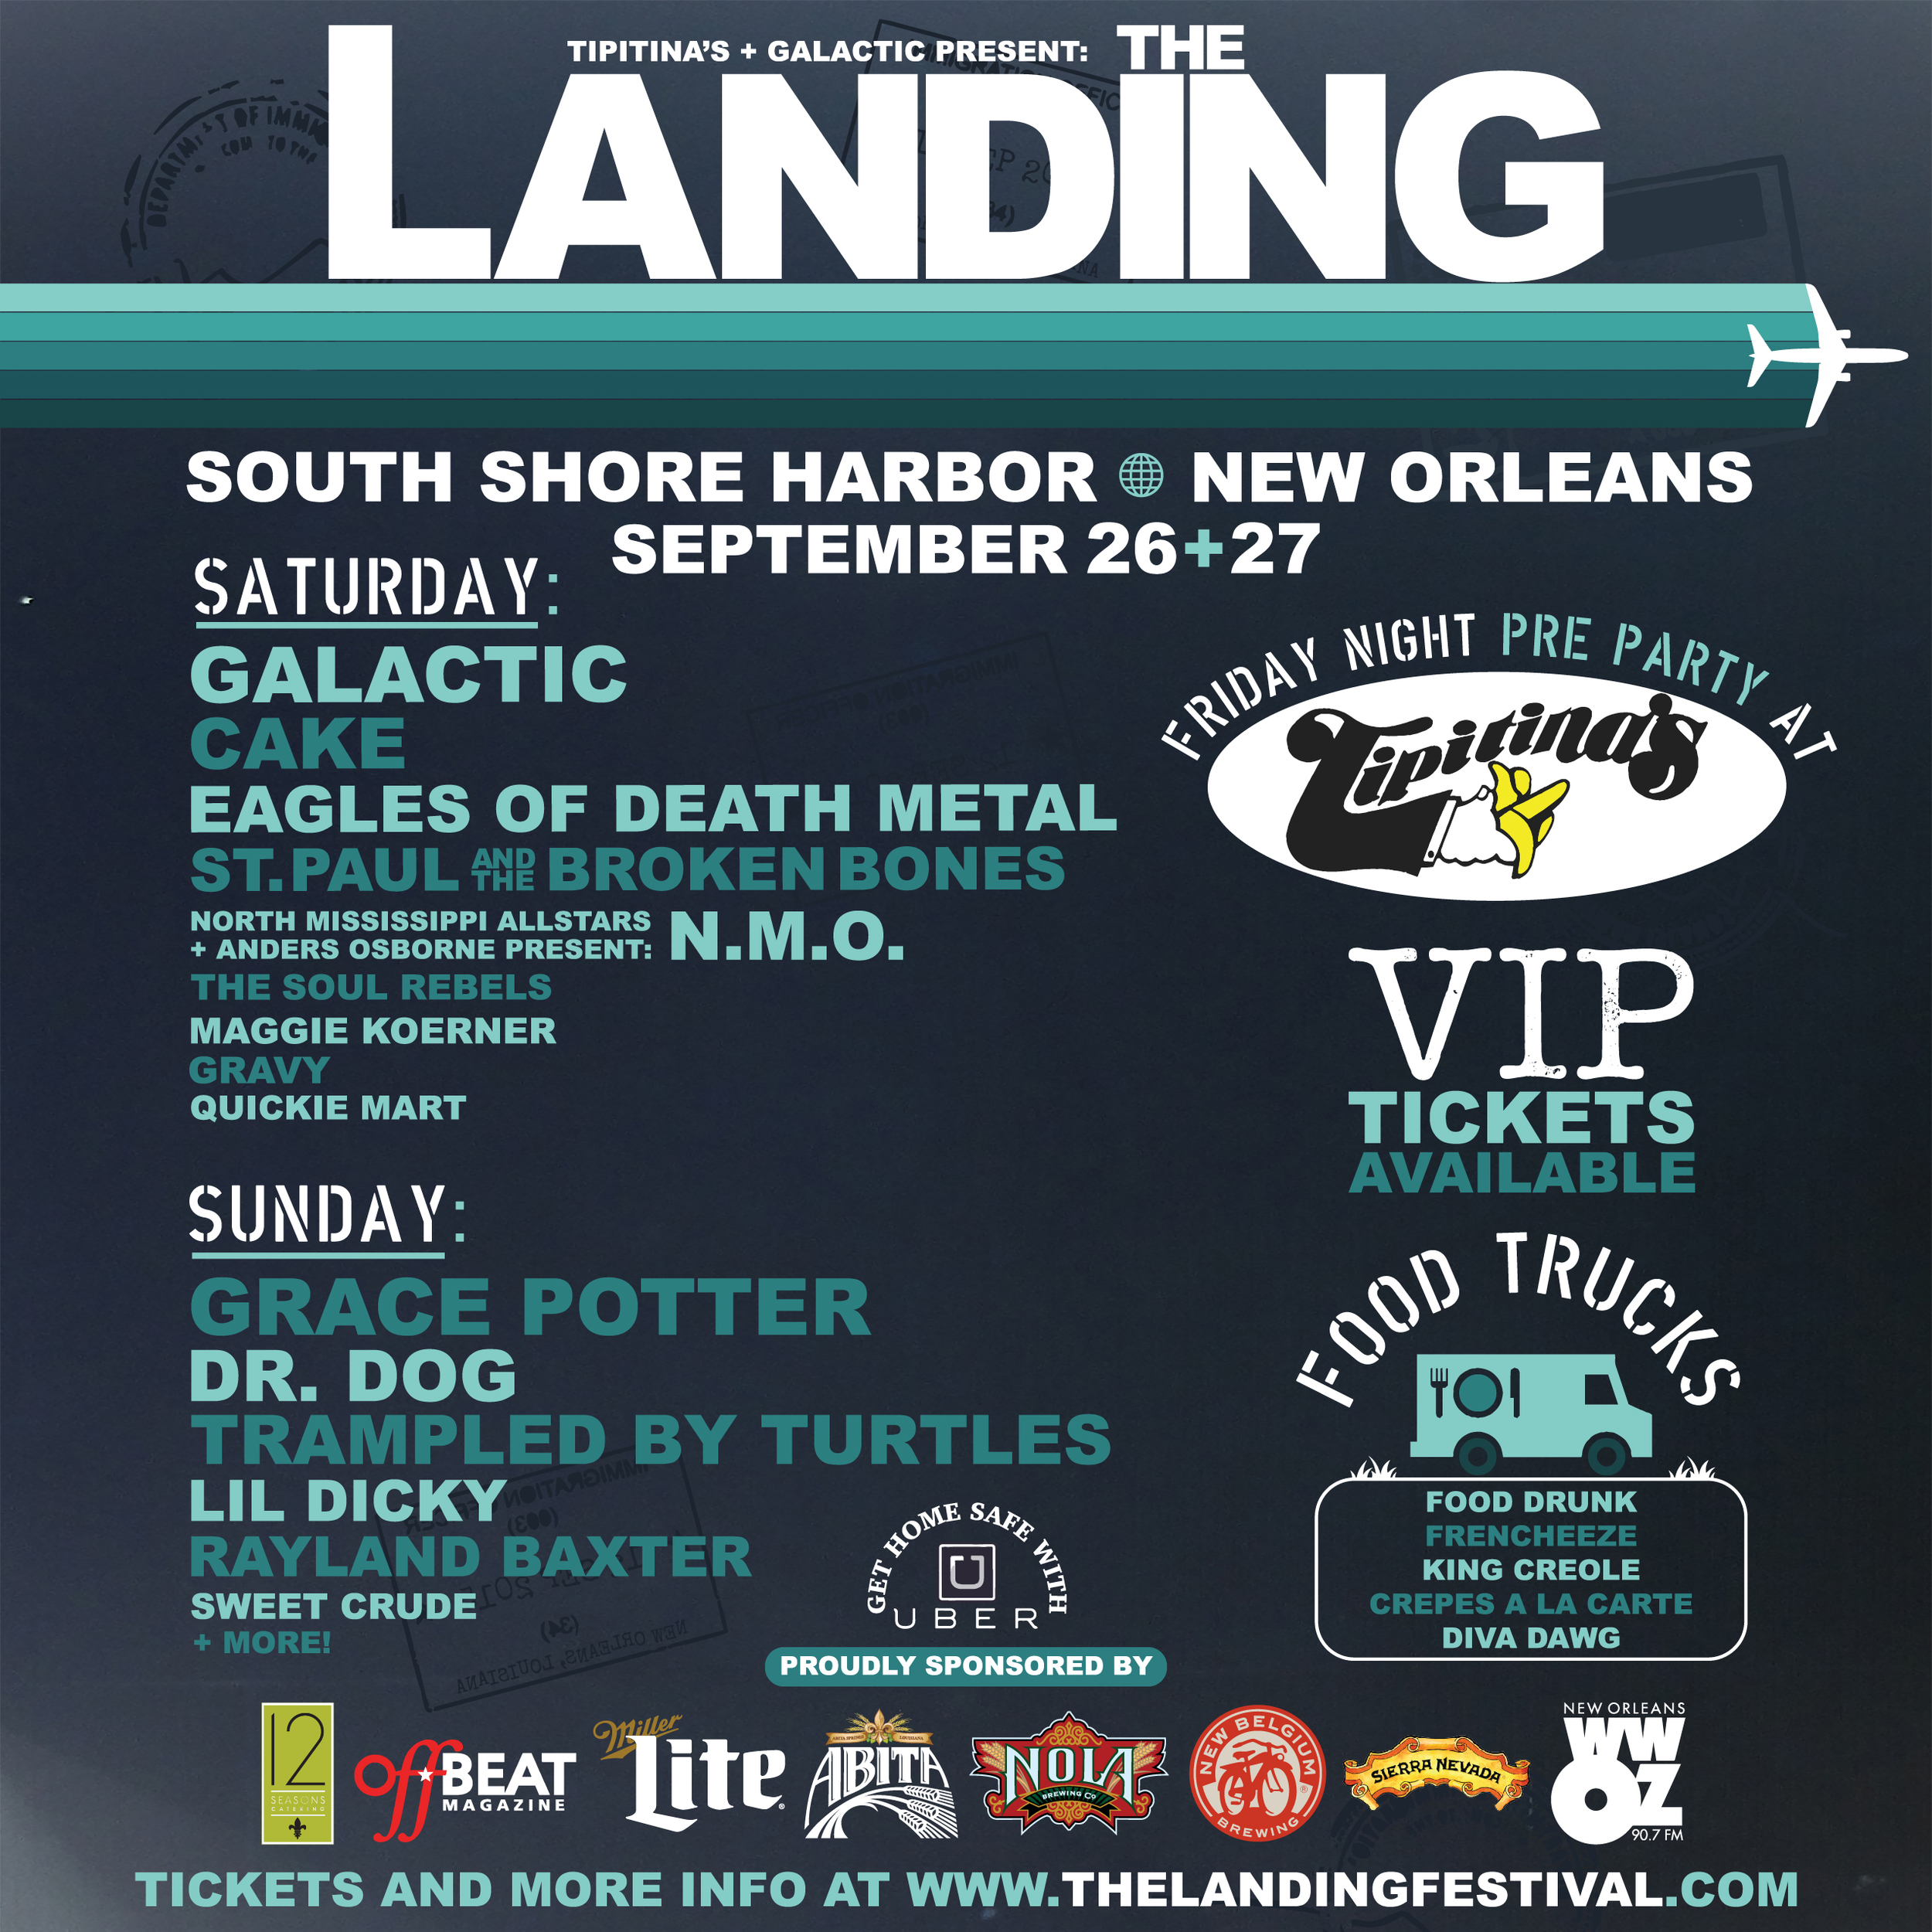 Anders will be performing twice at THE LANDING FESTIVAL in New Orleans later this month! The first performance will be as a special guest at the festival pre party at Tipitina's on Friday September 25th. Only people who buy 3-Day passes to the festival will be able to attend this exclusive party at Tips! Get tickets  HERE!   The second performance will be with N.M.O. on Saturday September 26th at New Orleans' South Shore Harbor during the actual festival! Tickets, full line up, parking passes, food trucks and more info can be found at  www.TheLandingFestival.com . See you there!